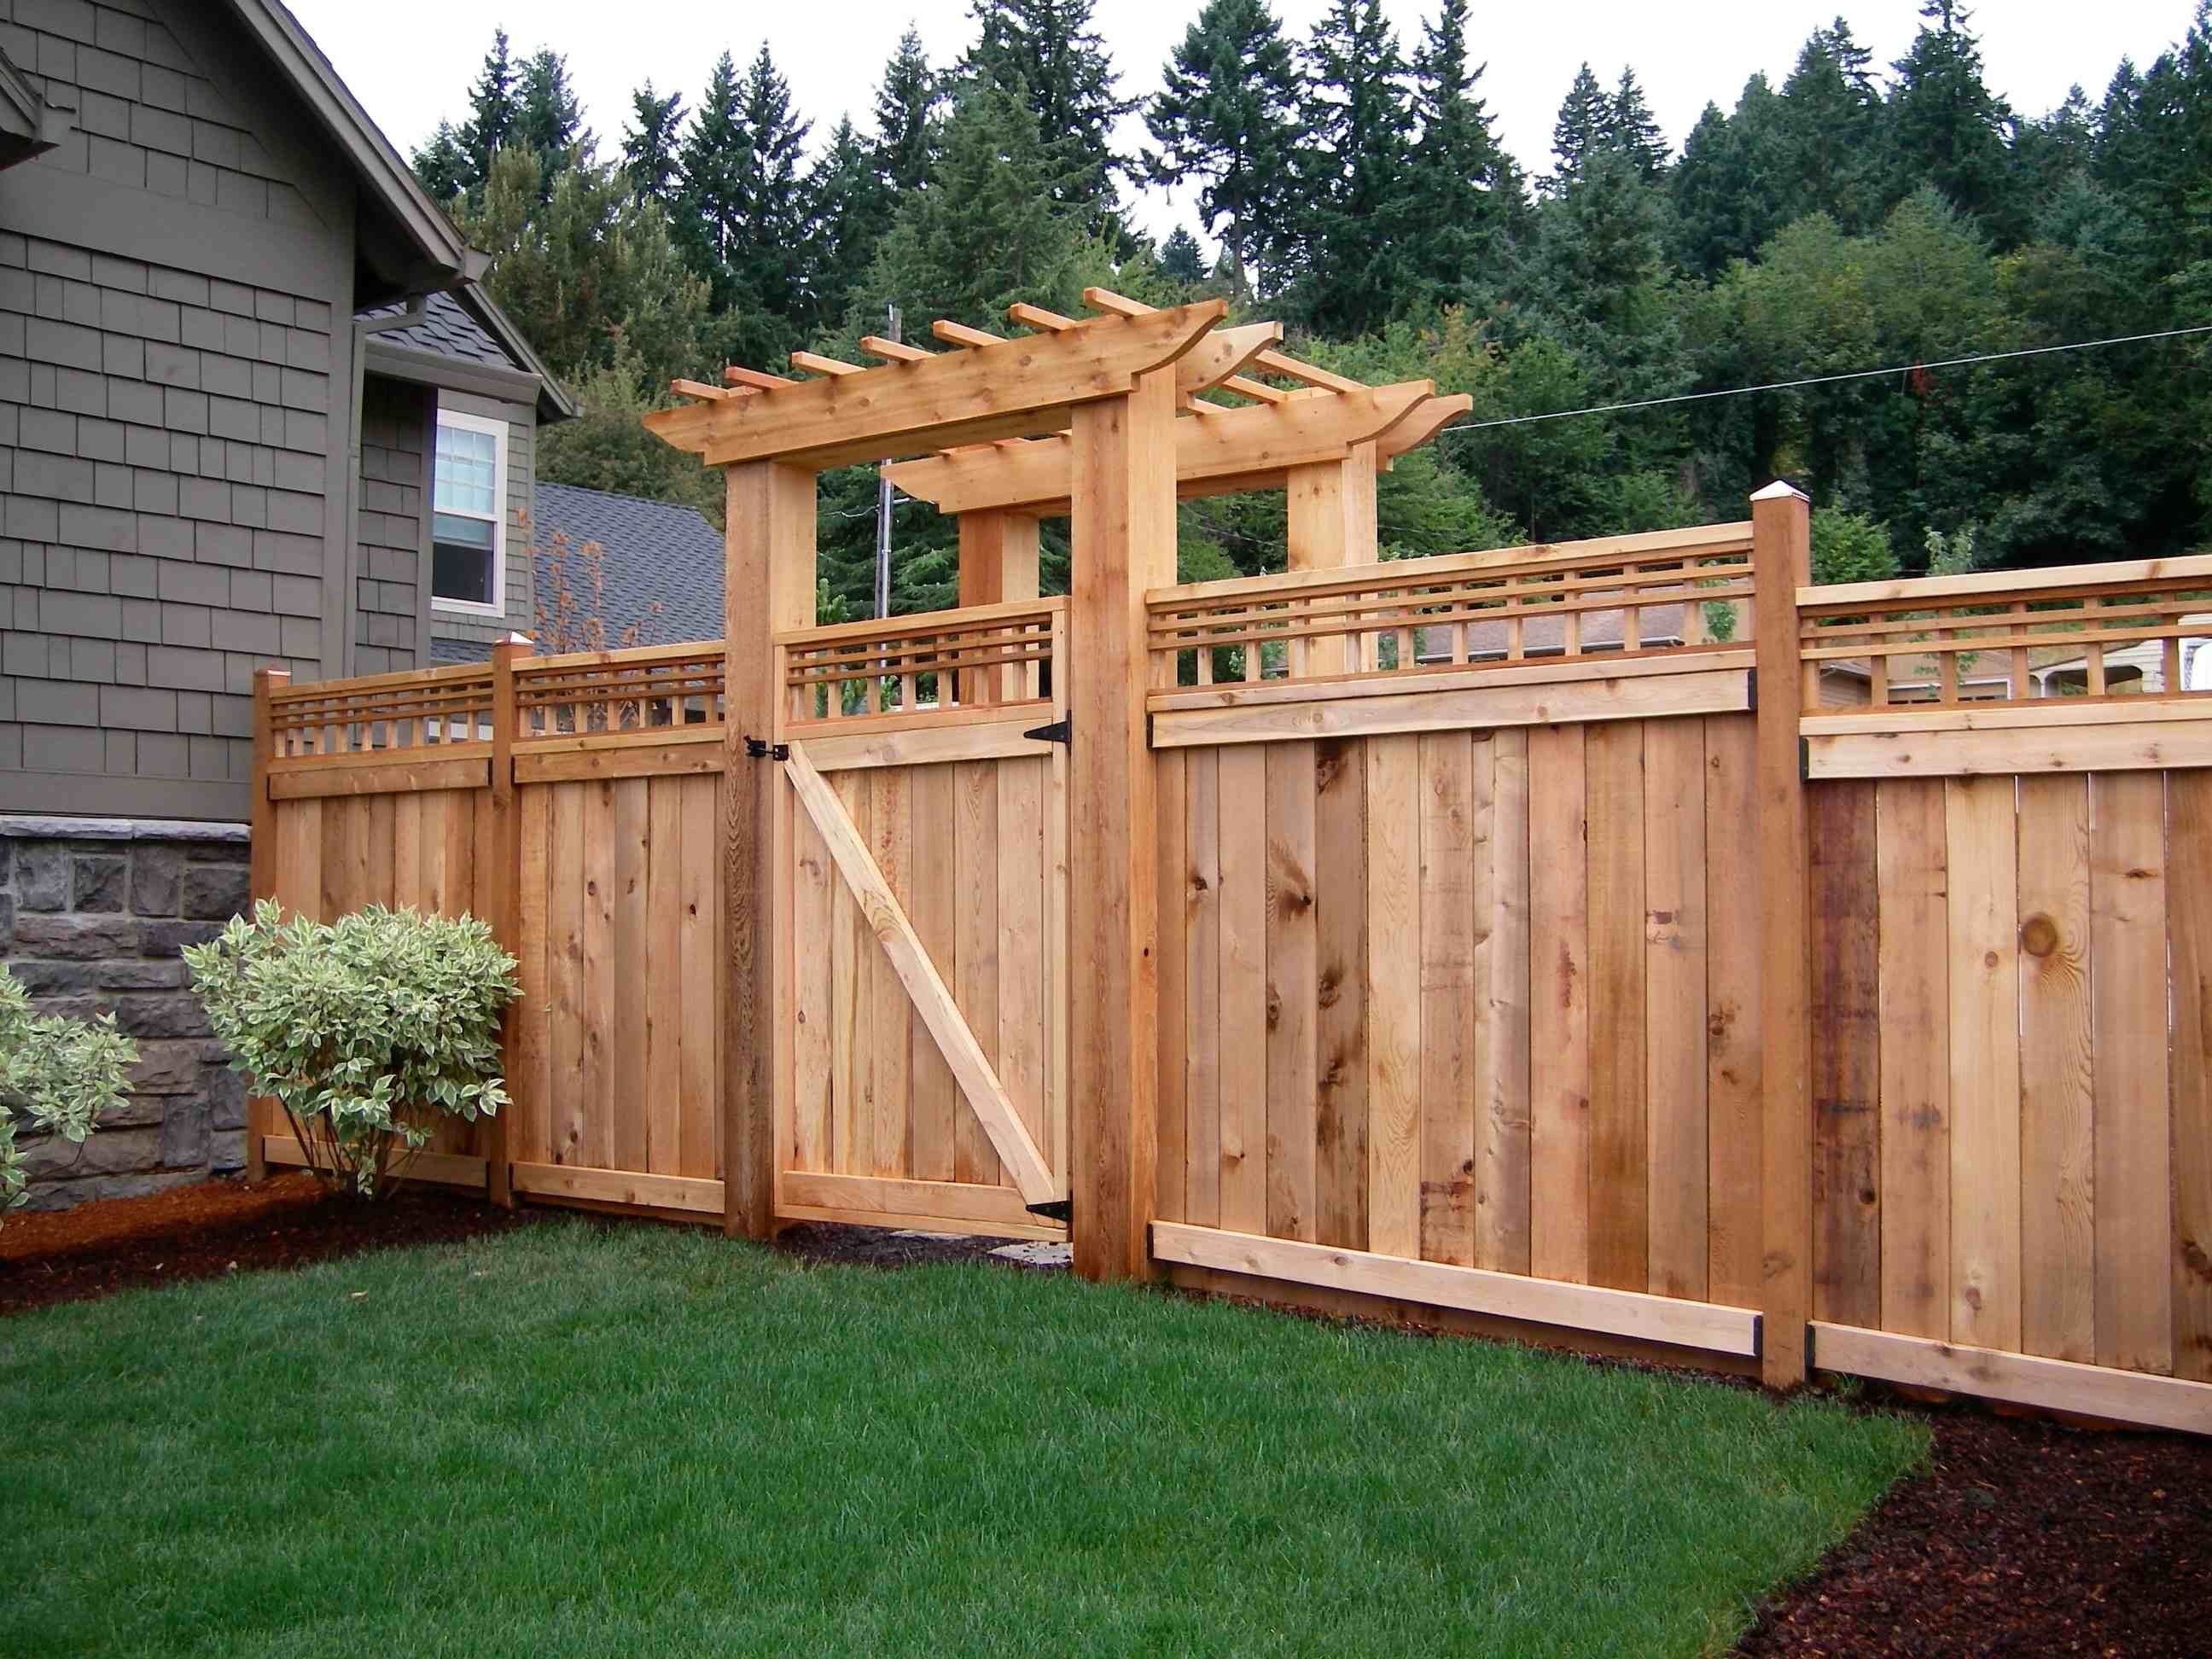 extraordinary yard fencing ideas have front ya awesome fence for vegetable garden fence ideas the landscape design image of garden fence ideas images